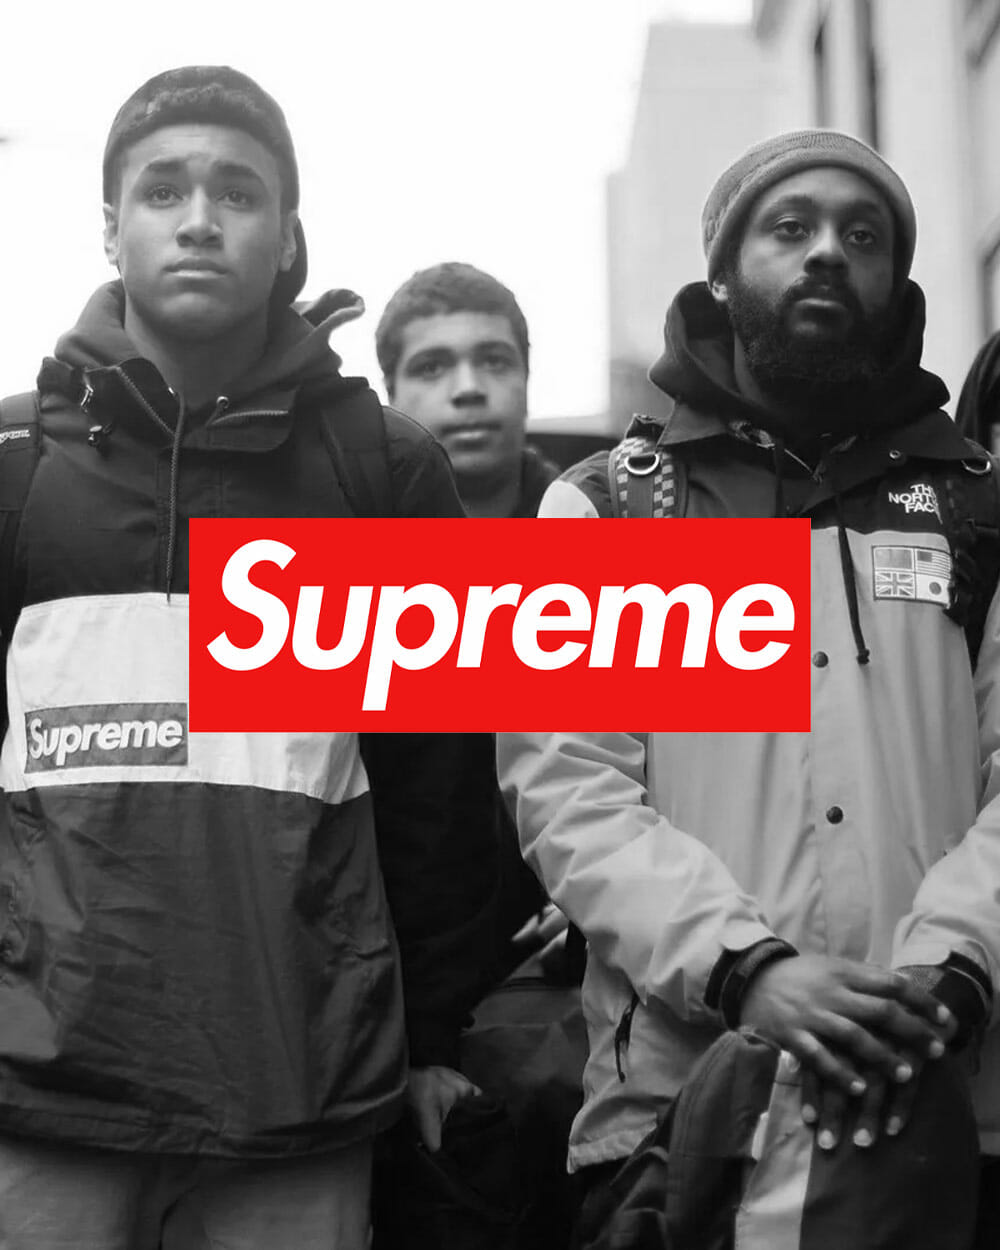 Supreme community, fans, and resellers